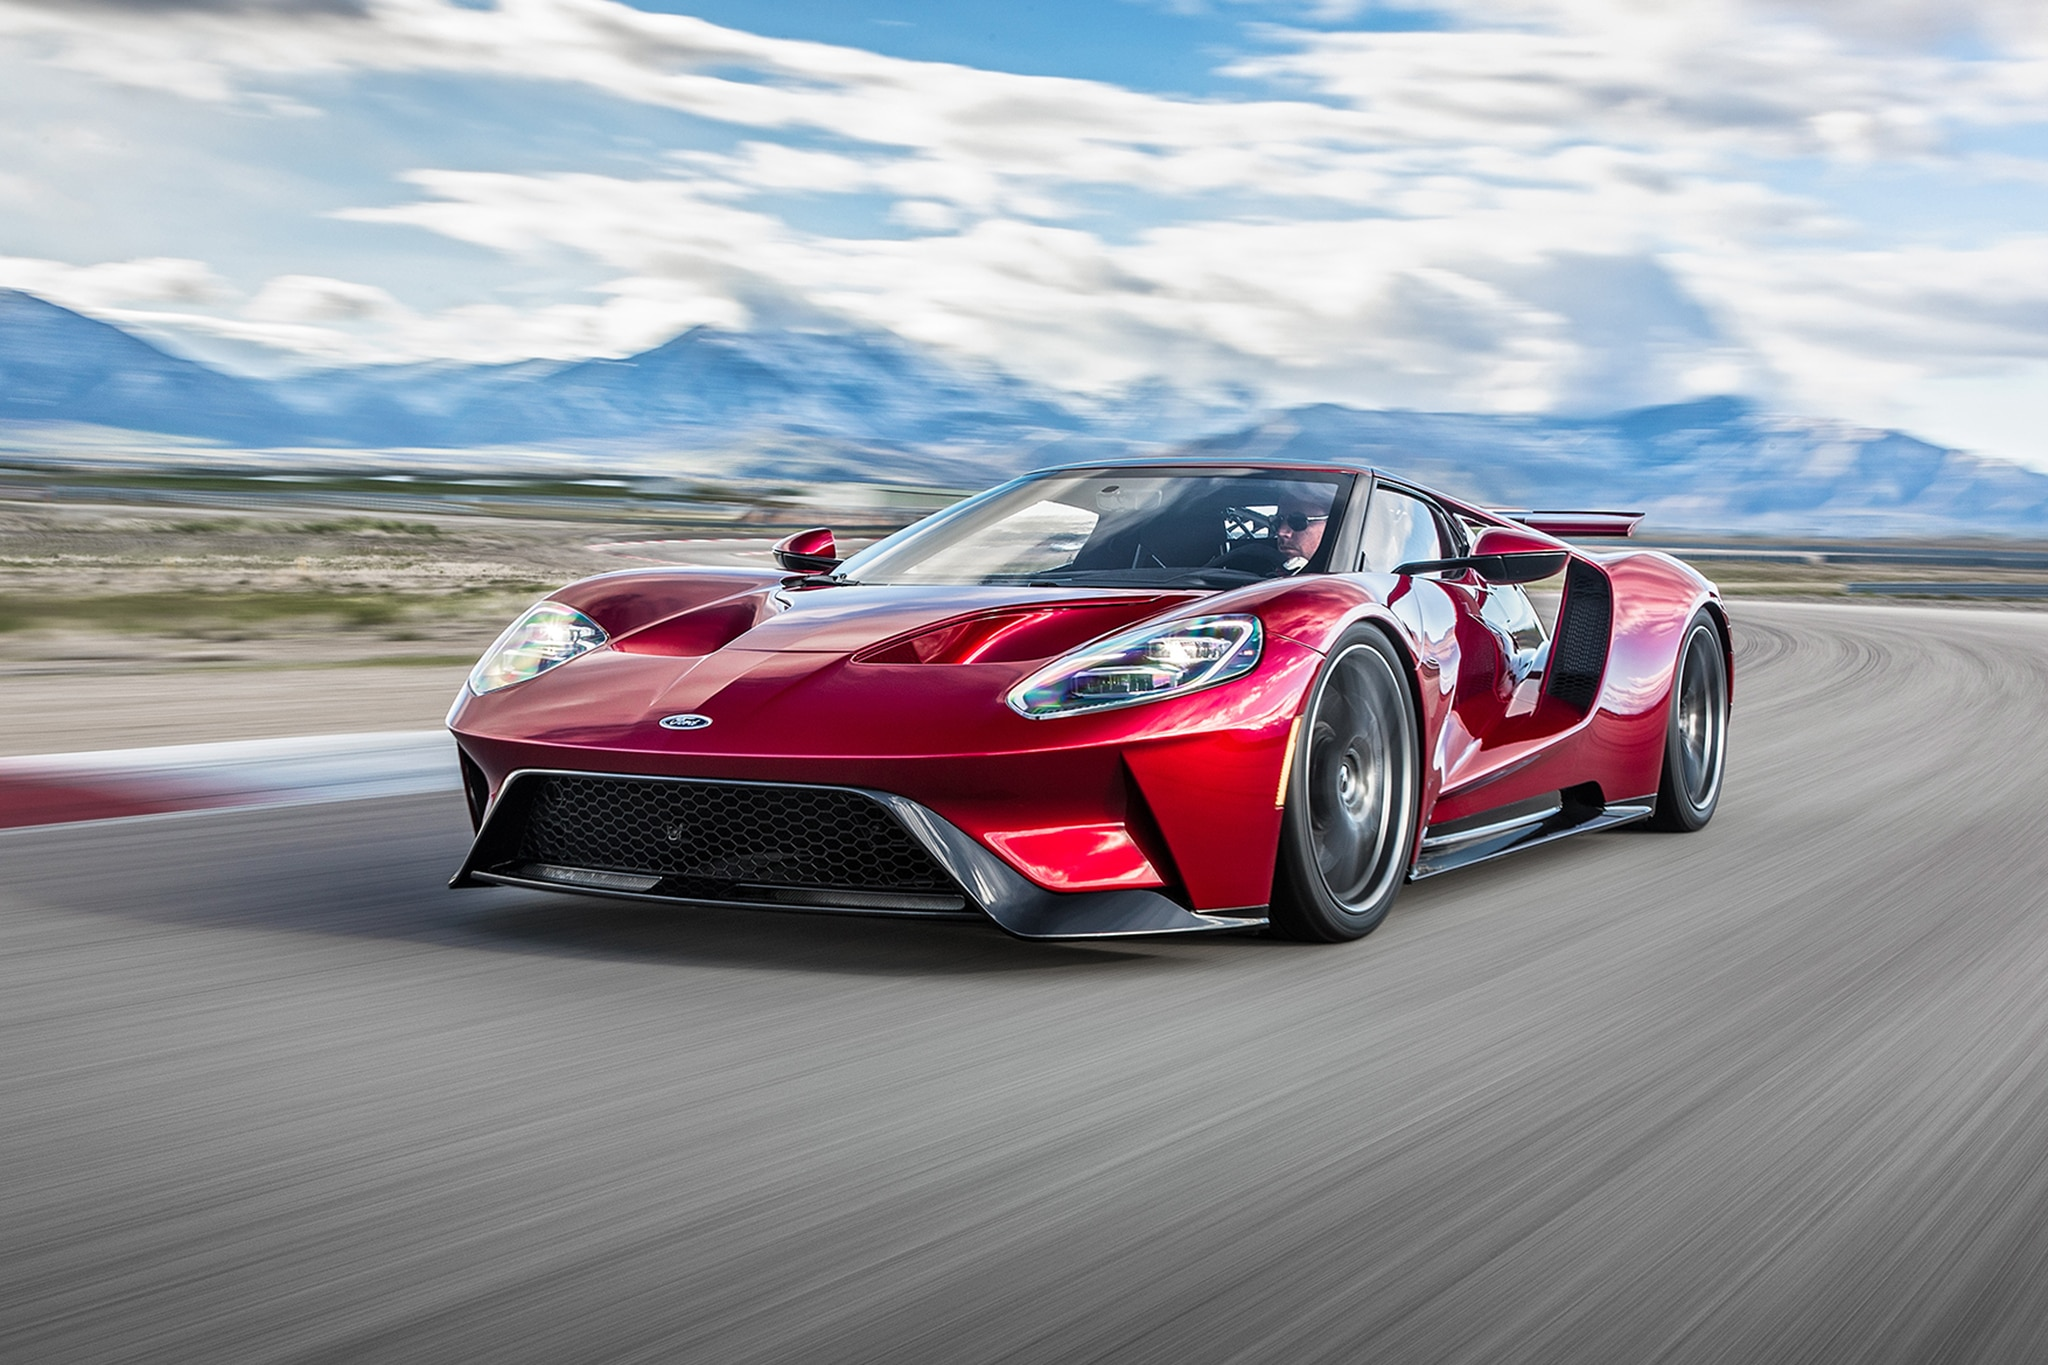 2017 Ford Gt First Drive Review Automobile Magazine